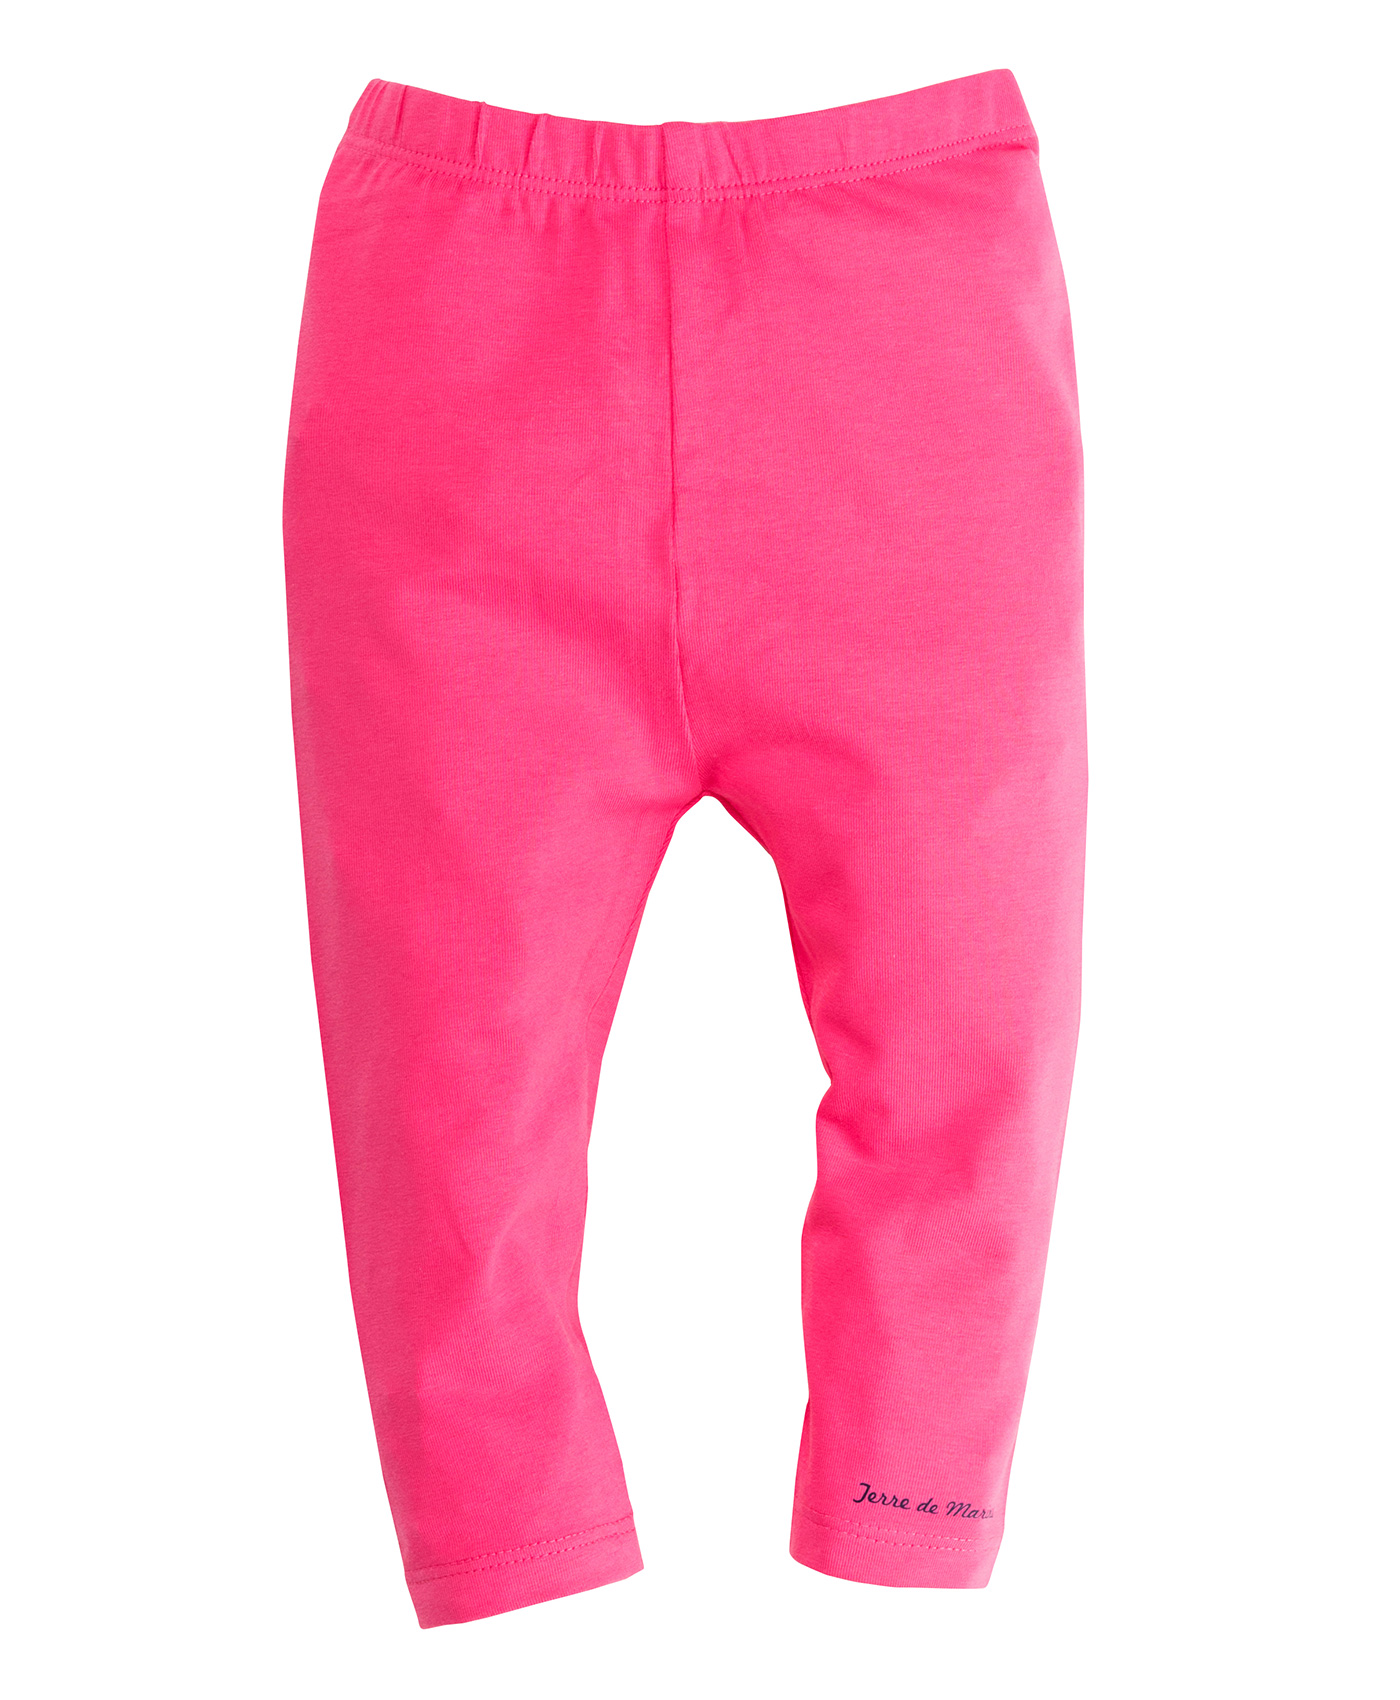 Calecon legging long bébé - Mode marine Bébé